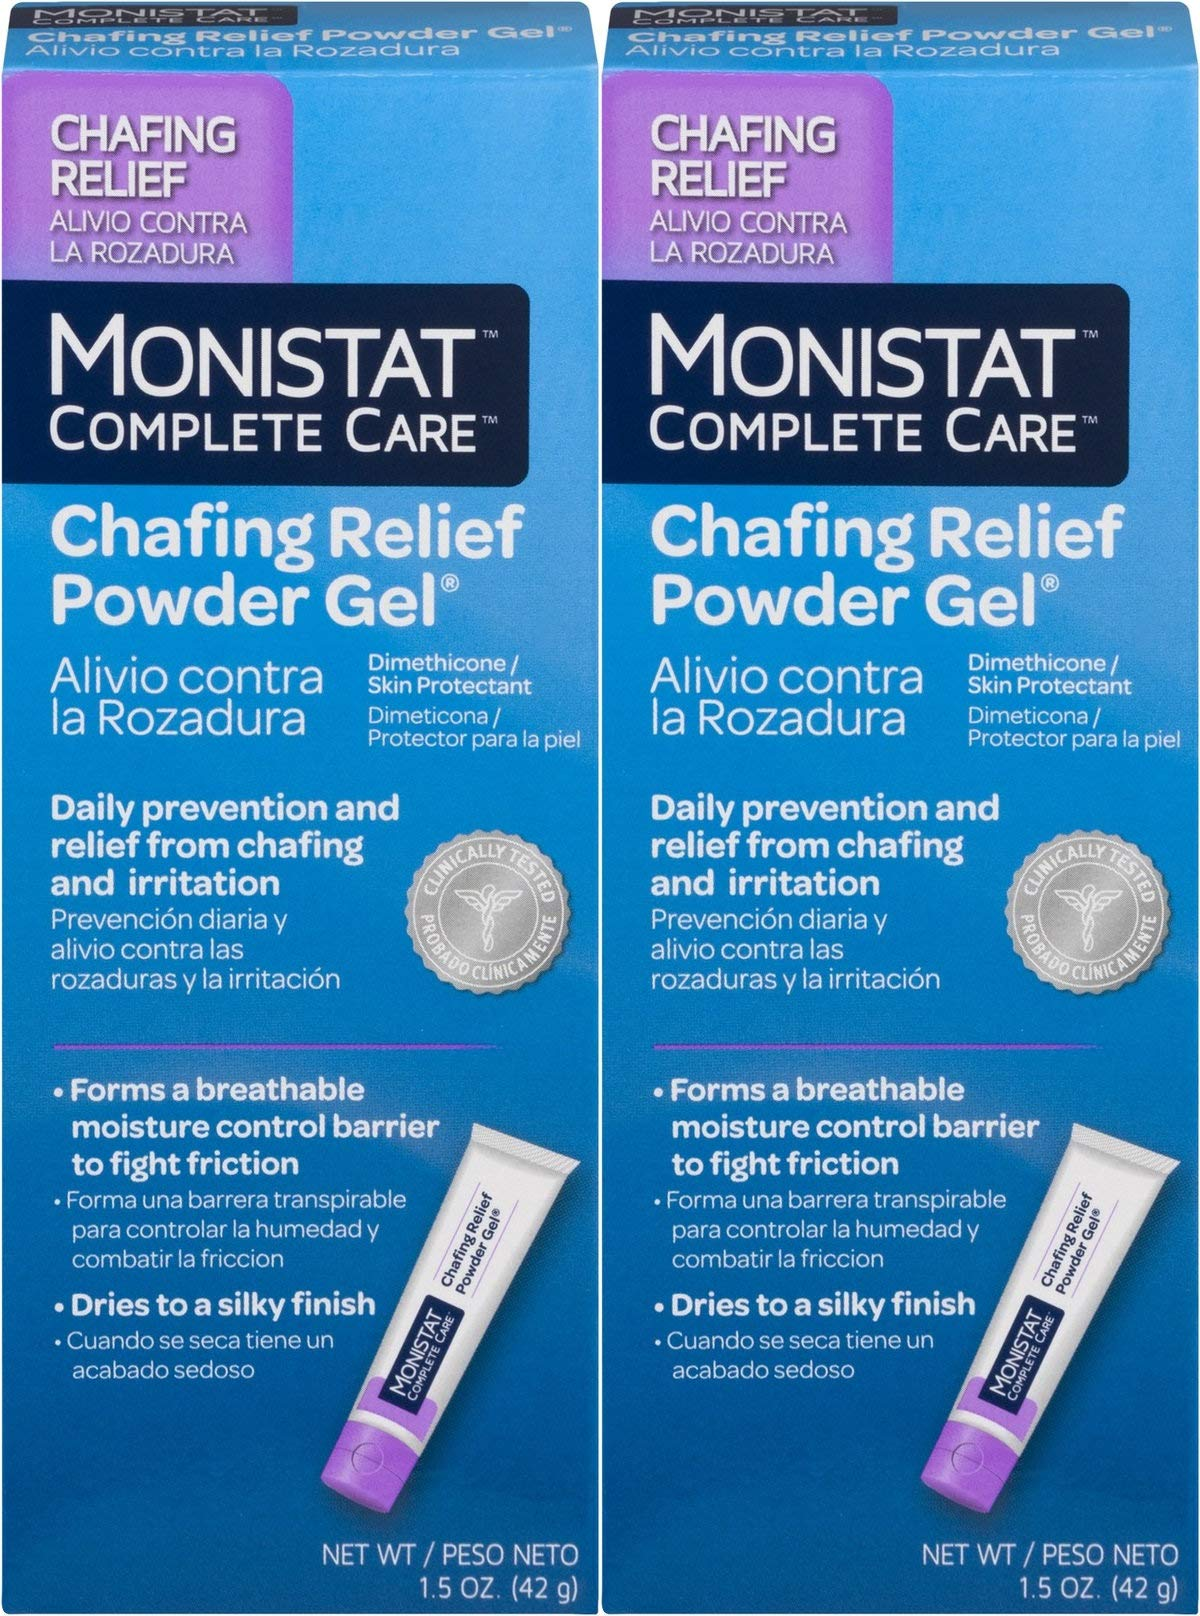 MONISTAT Chafing Relief Powder Gel 1.5 oz (Pack of 2)